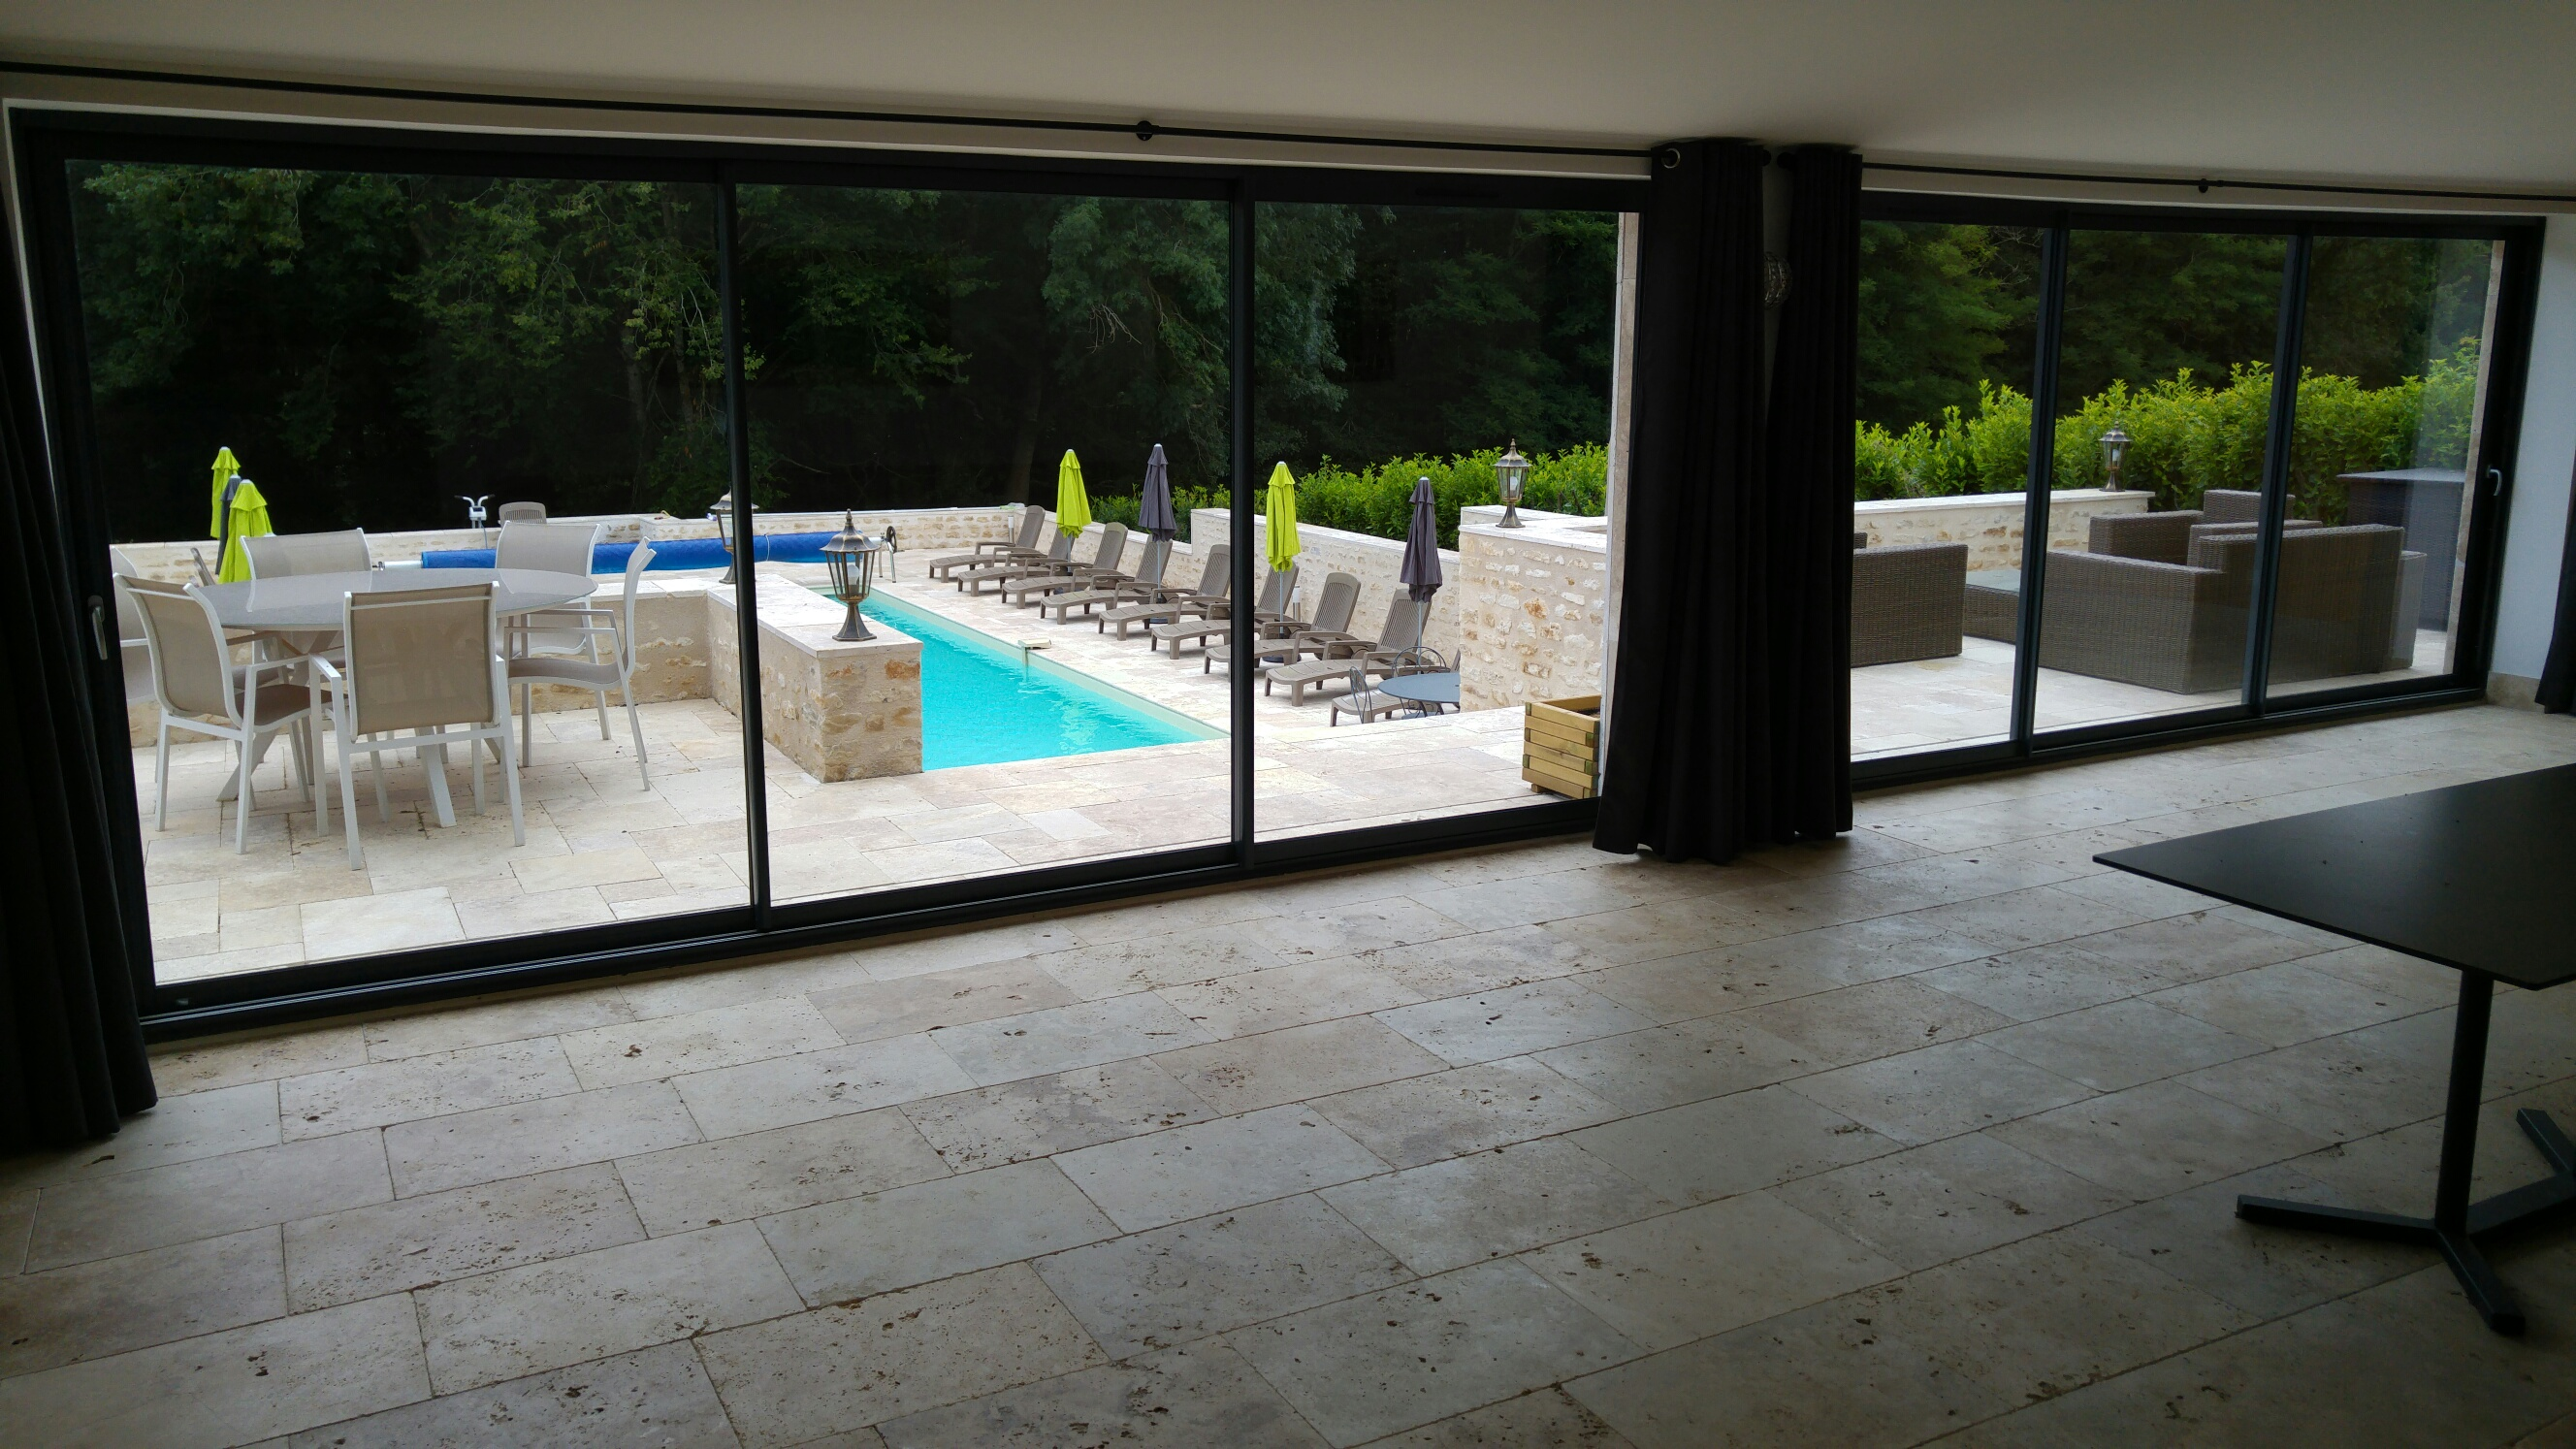 South west France holiday villa rental with pool